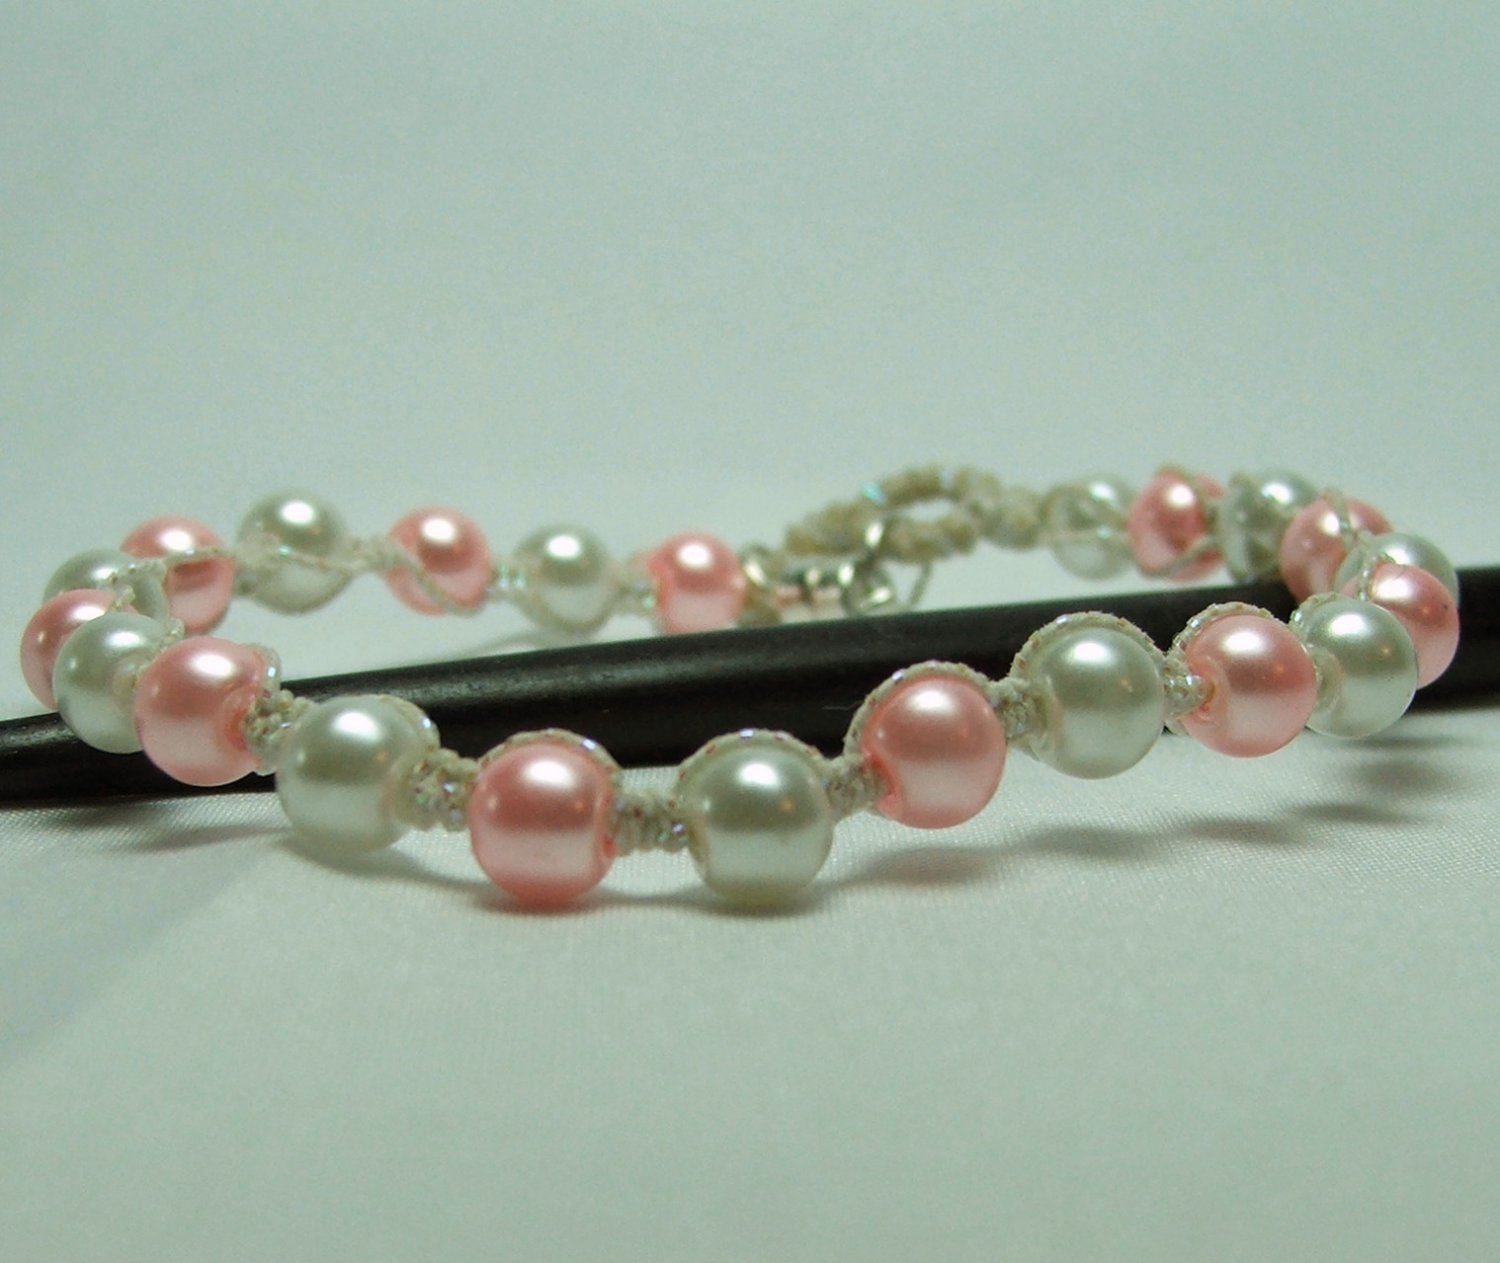 Pink and White Pearl Macrame Bracelet